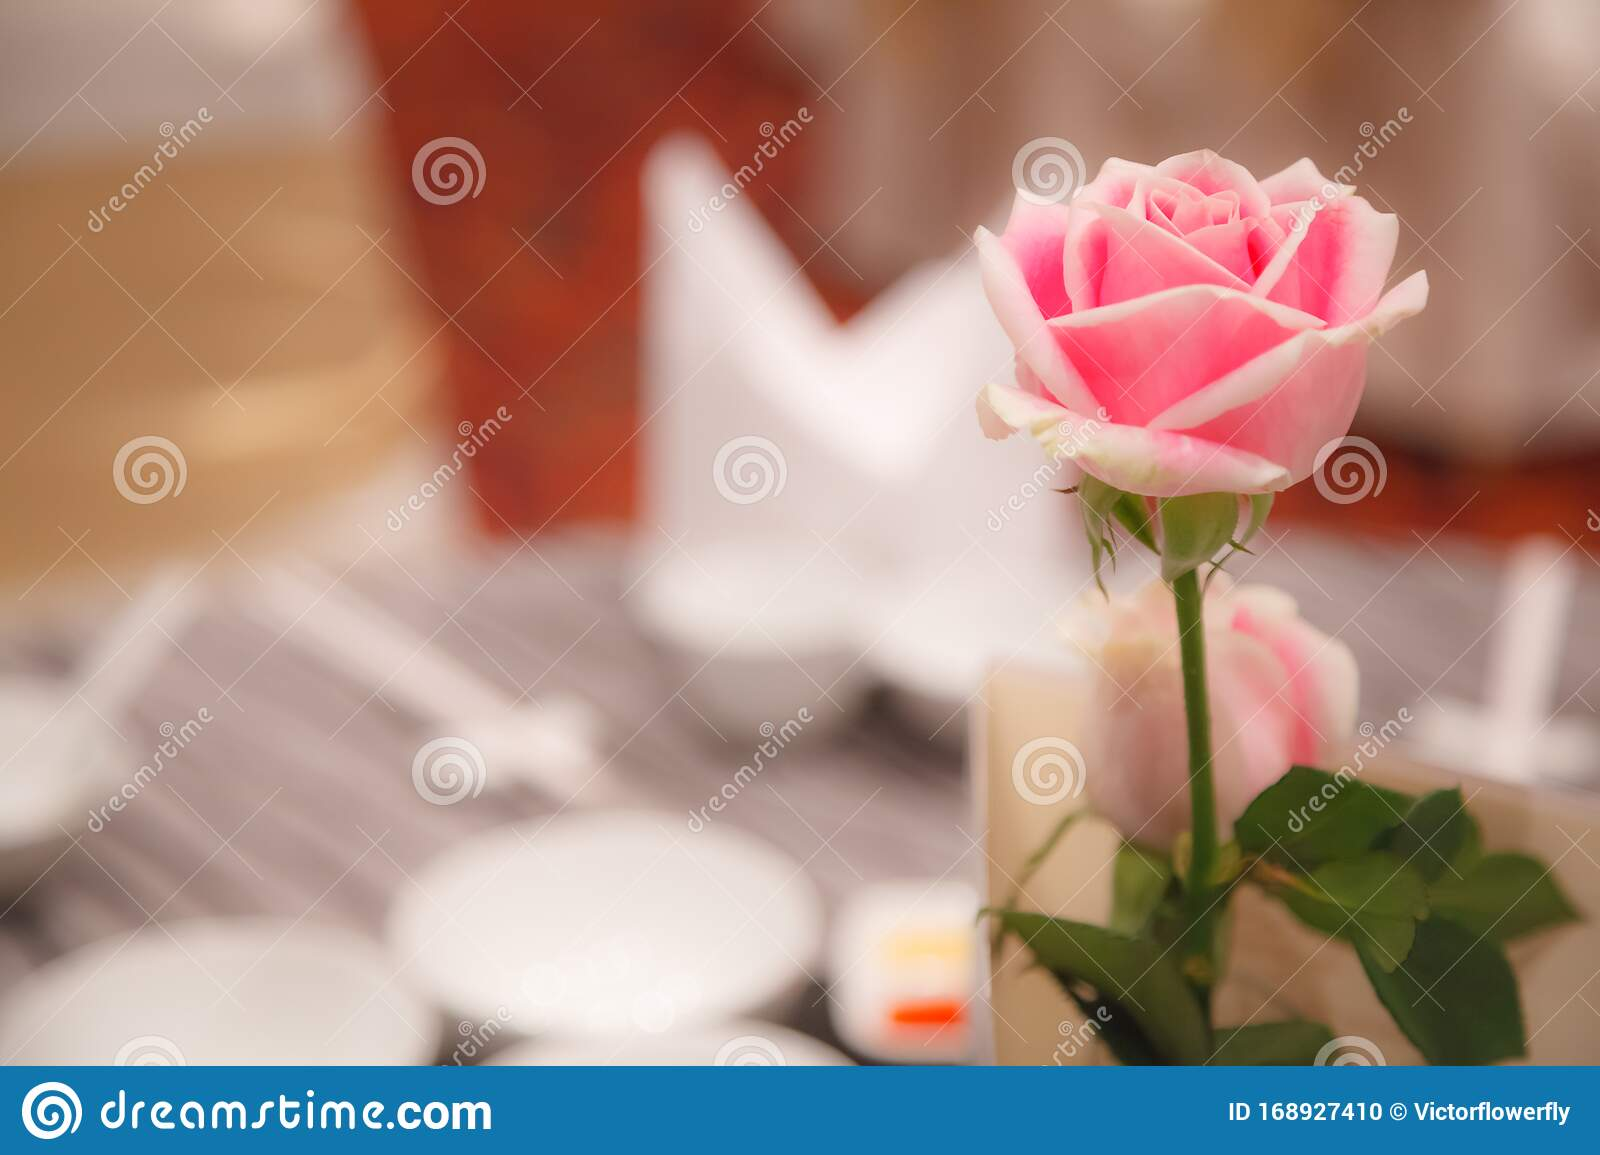 Pink Rose Decoration On Banquet Table Settings Hotel Restaurant Venue Food Catering Service Buffet Or Cocktail Banquet For Stock Photo Image Of Bouquet Catering 168927410